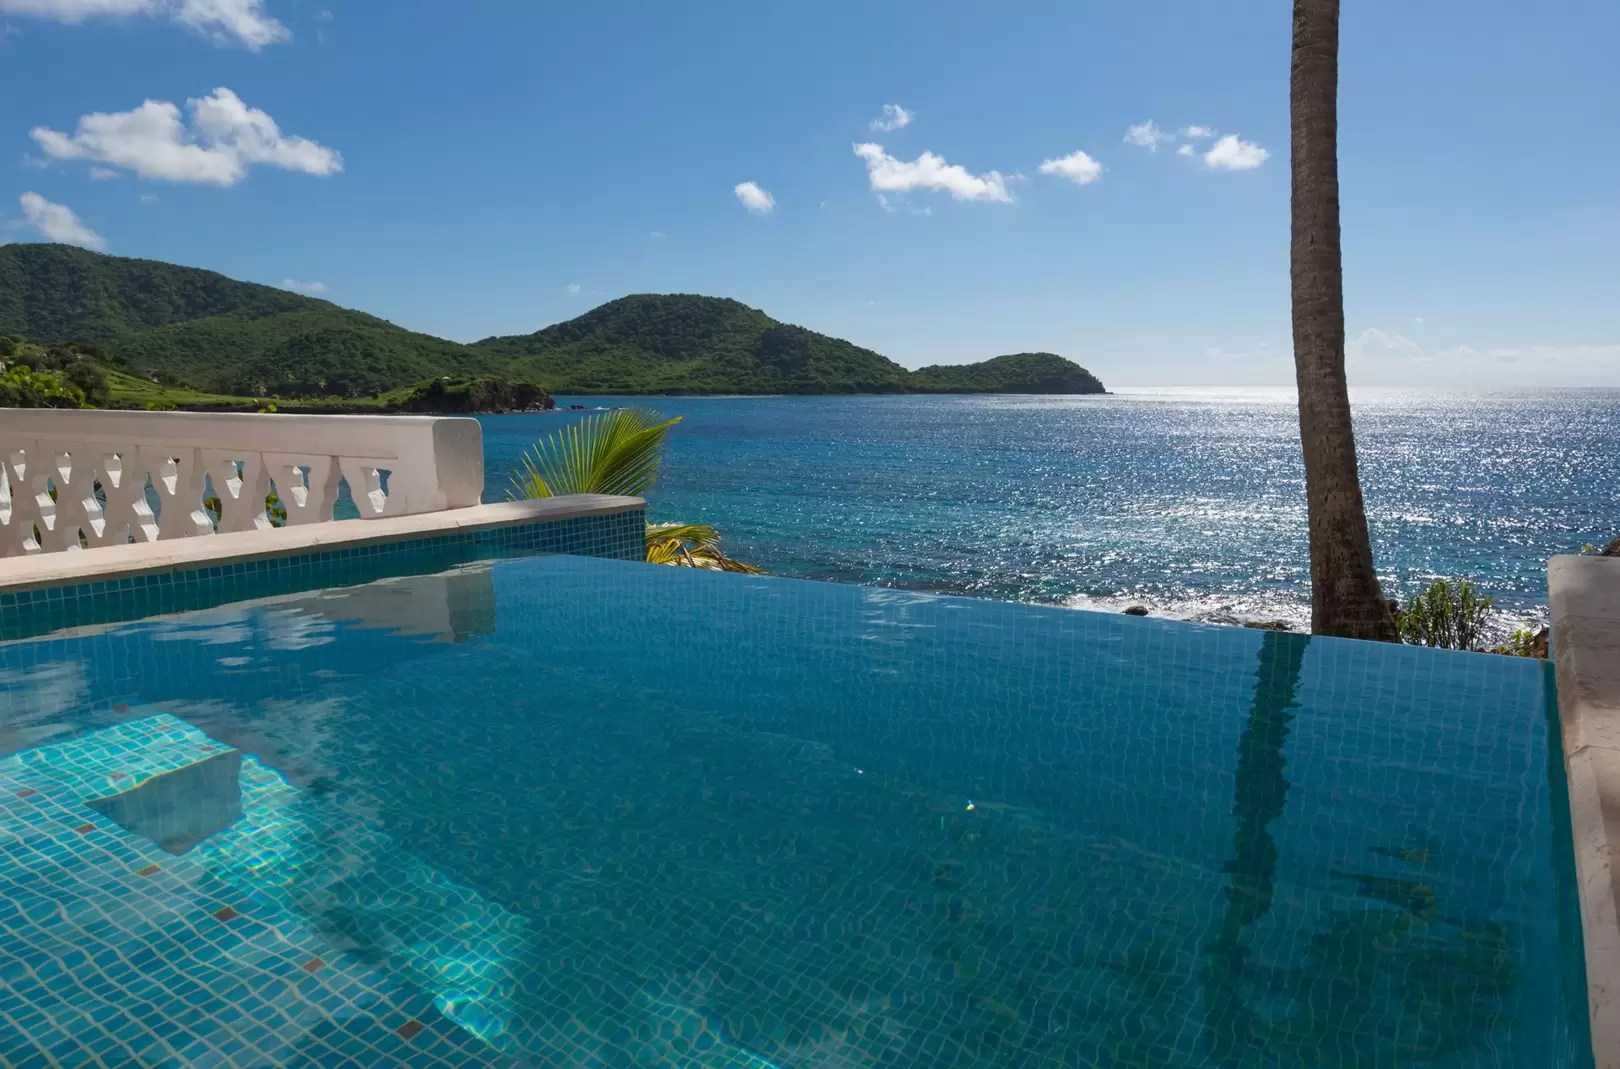 Antigua Curtain Bluff Curtain Bluff Review Is This The Ultimate Caribbean Resort For